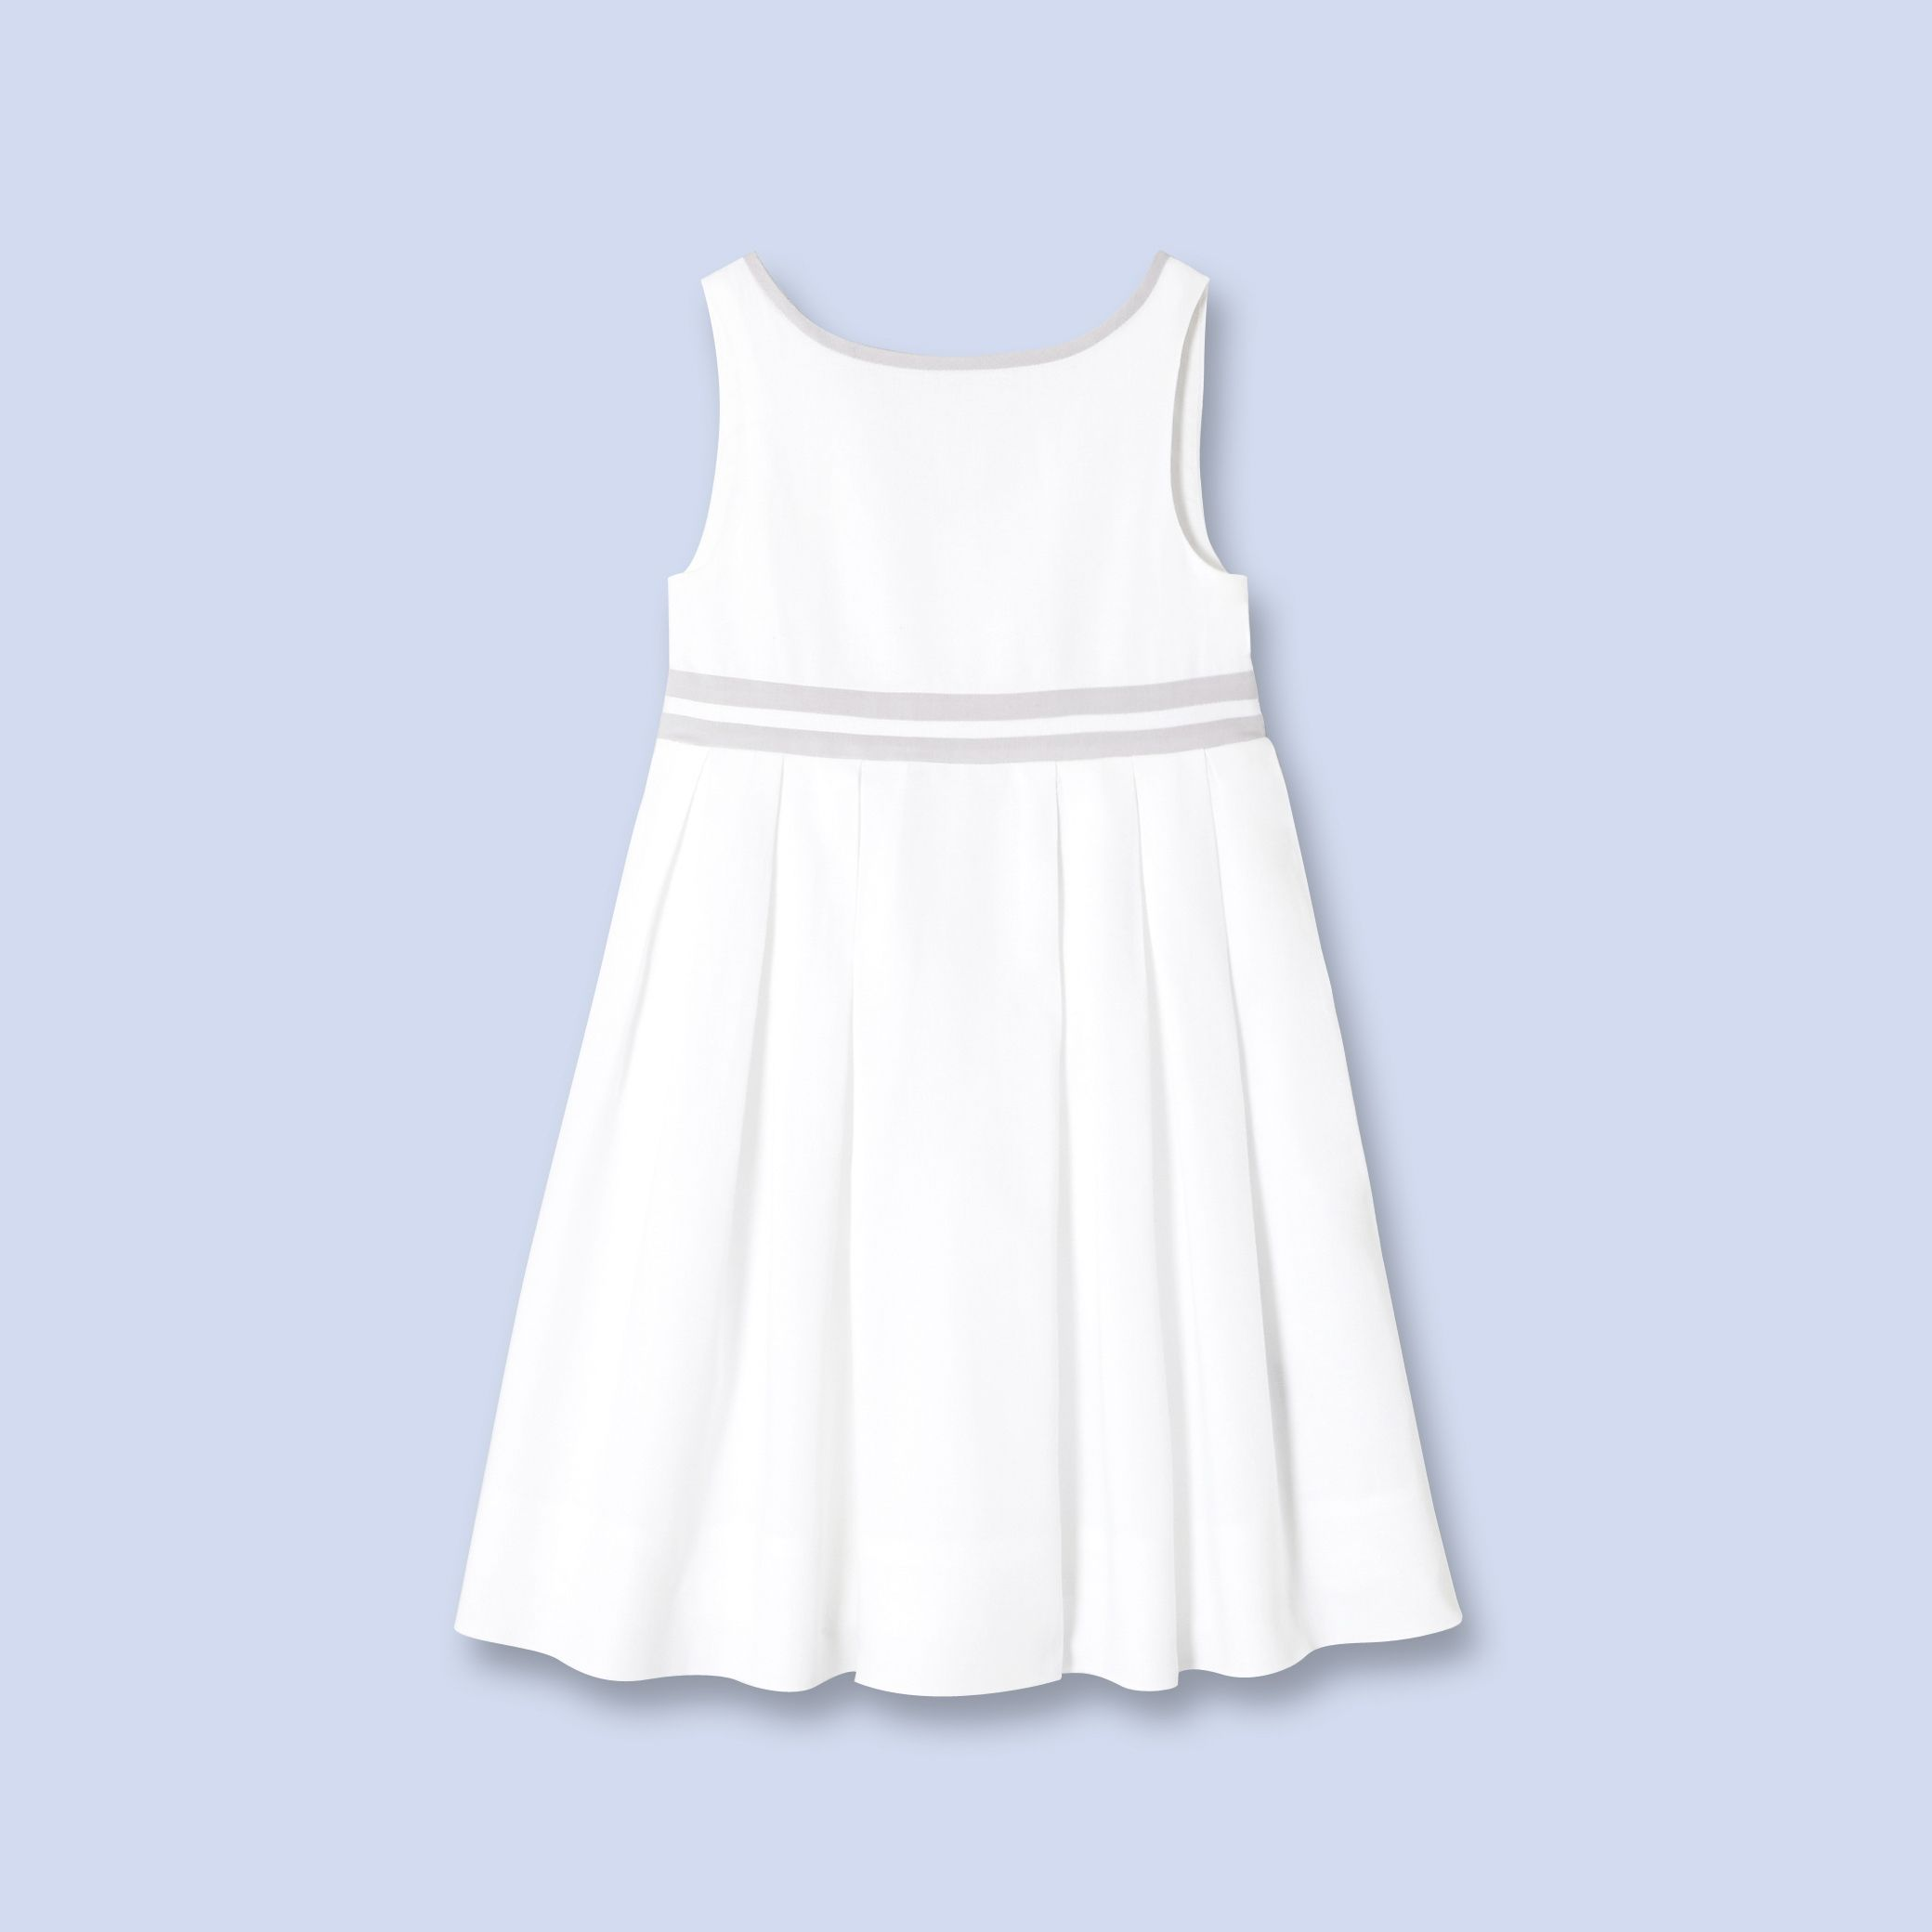 Bow-trimmed dress  for boys and girls, girl